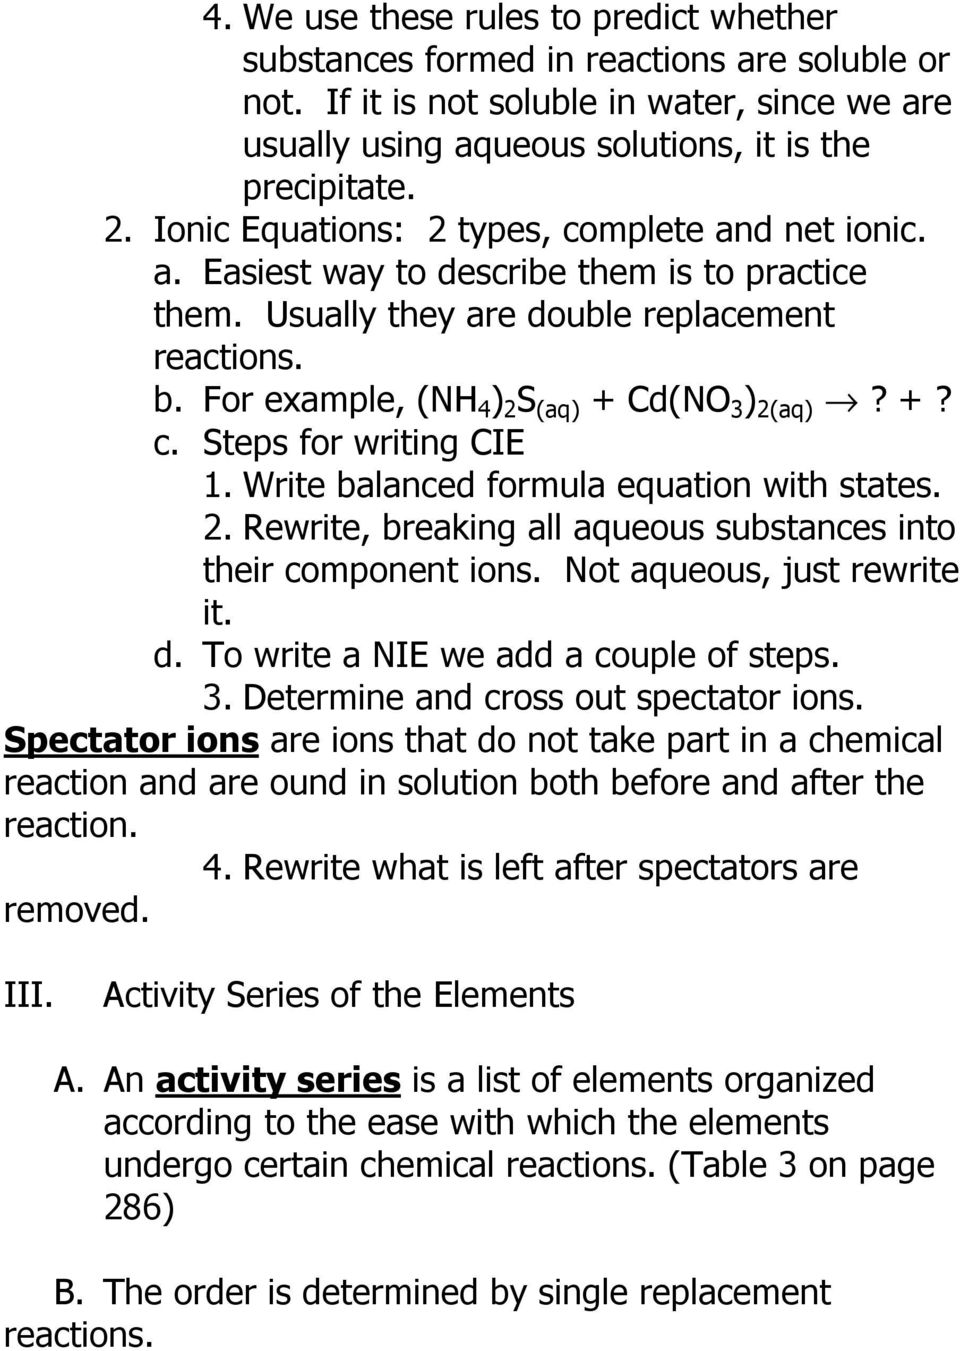 For example, (NH 4 ) 2 S (aq) + Cd(NO 3 ) 2(aq)? +? c. Steps for writing CIE 1. Write balanced formula equation with states. 2. Rewrite, breaking all aqueous substances into their component ions.